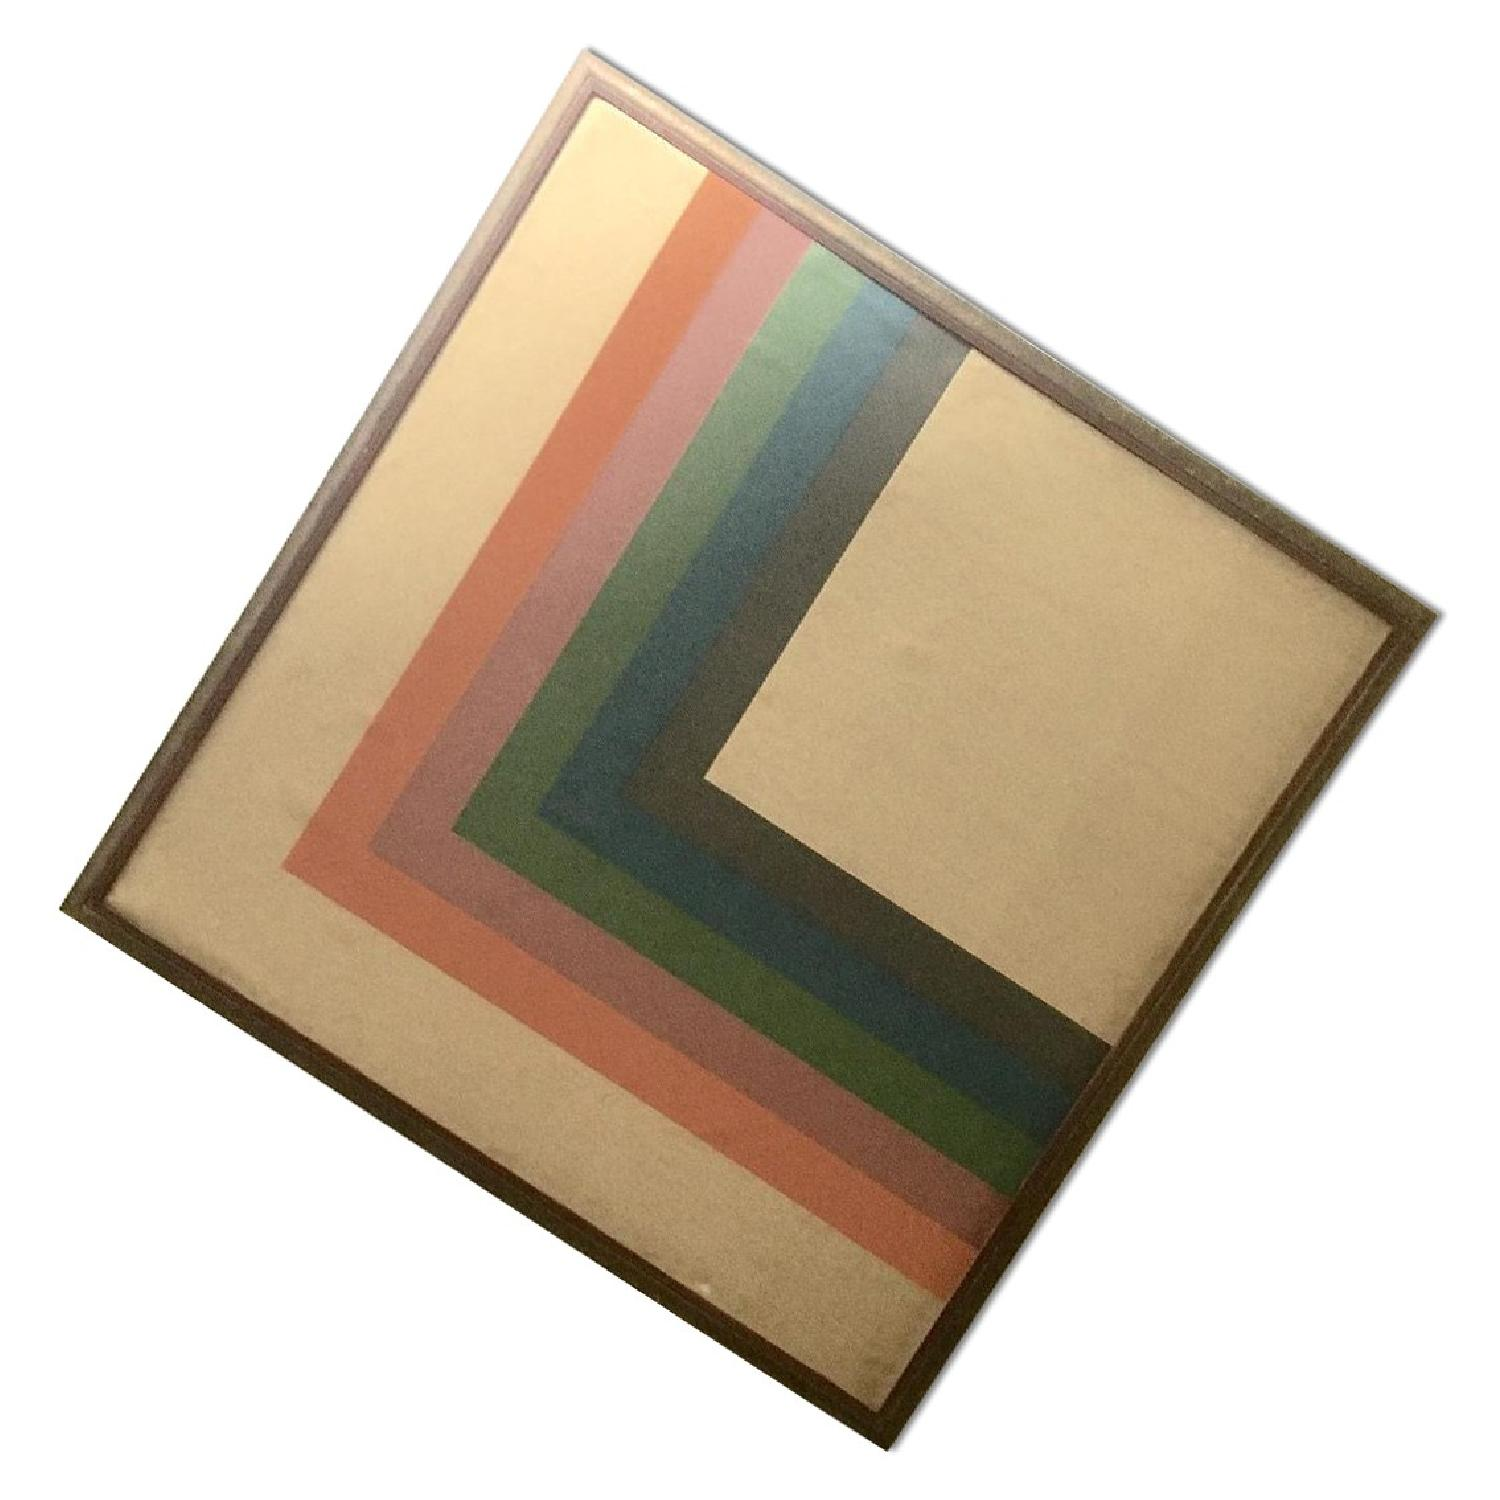 Large Format 70's Geometric Abstract Painting - image-0